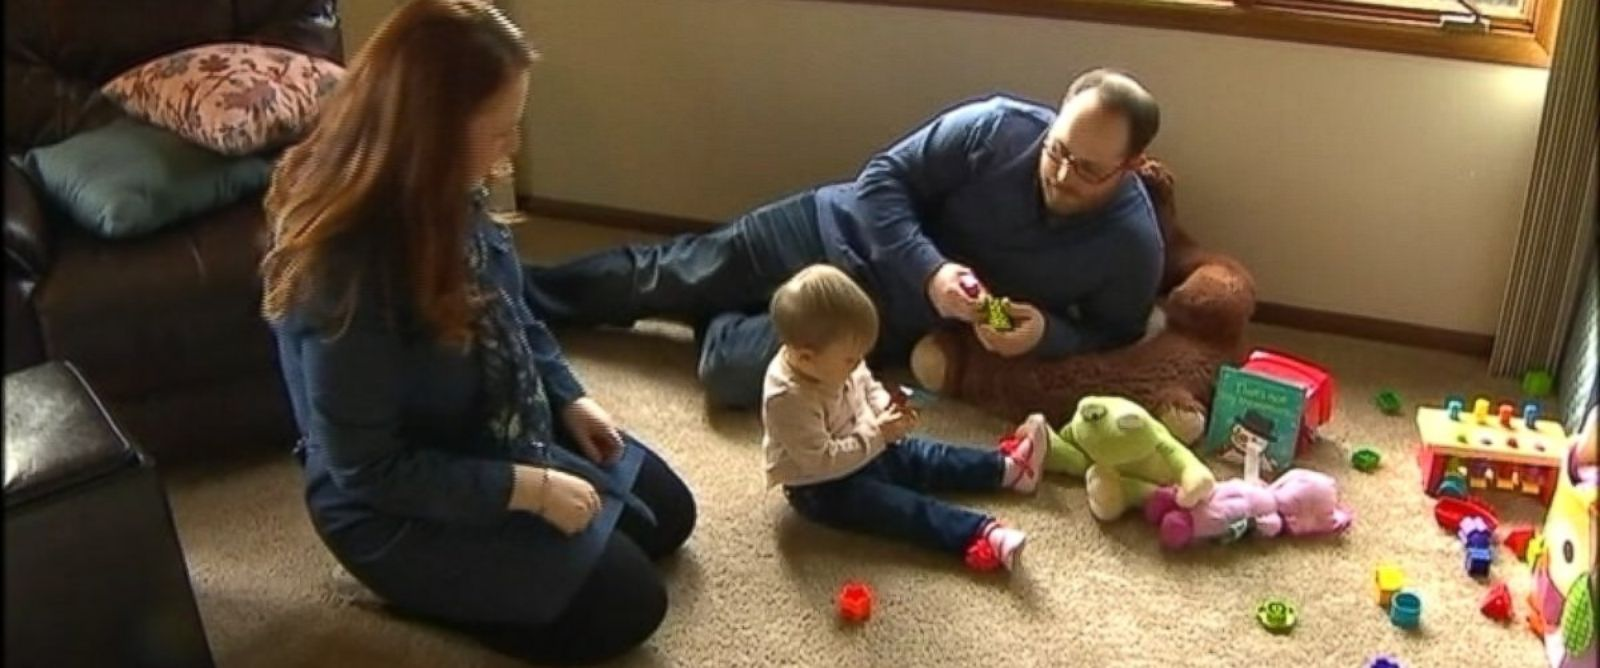 PHOTO: Embryo donation enabled the DeVore family to have their child, CJ.